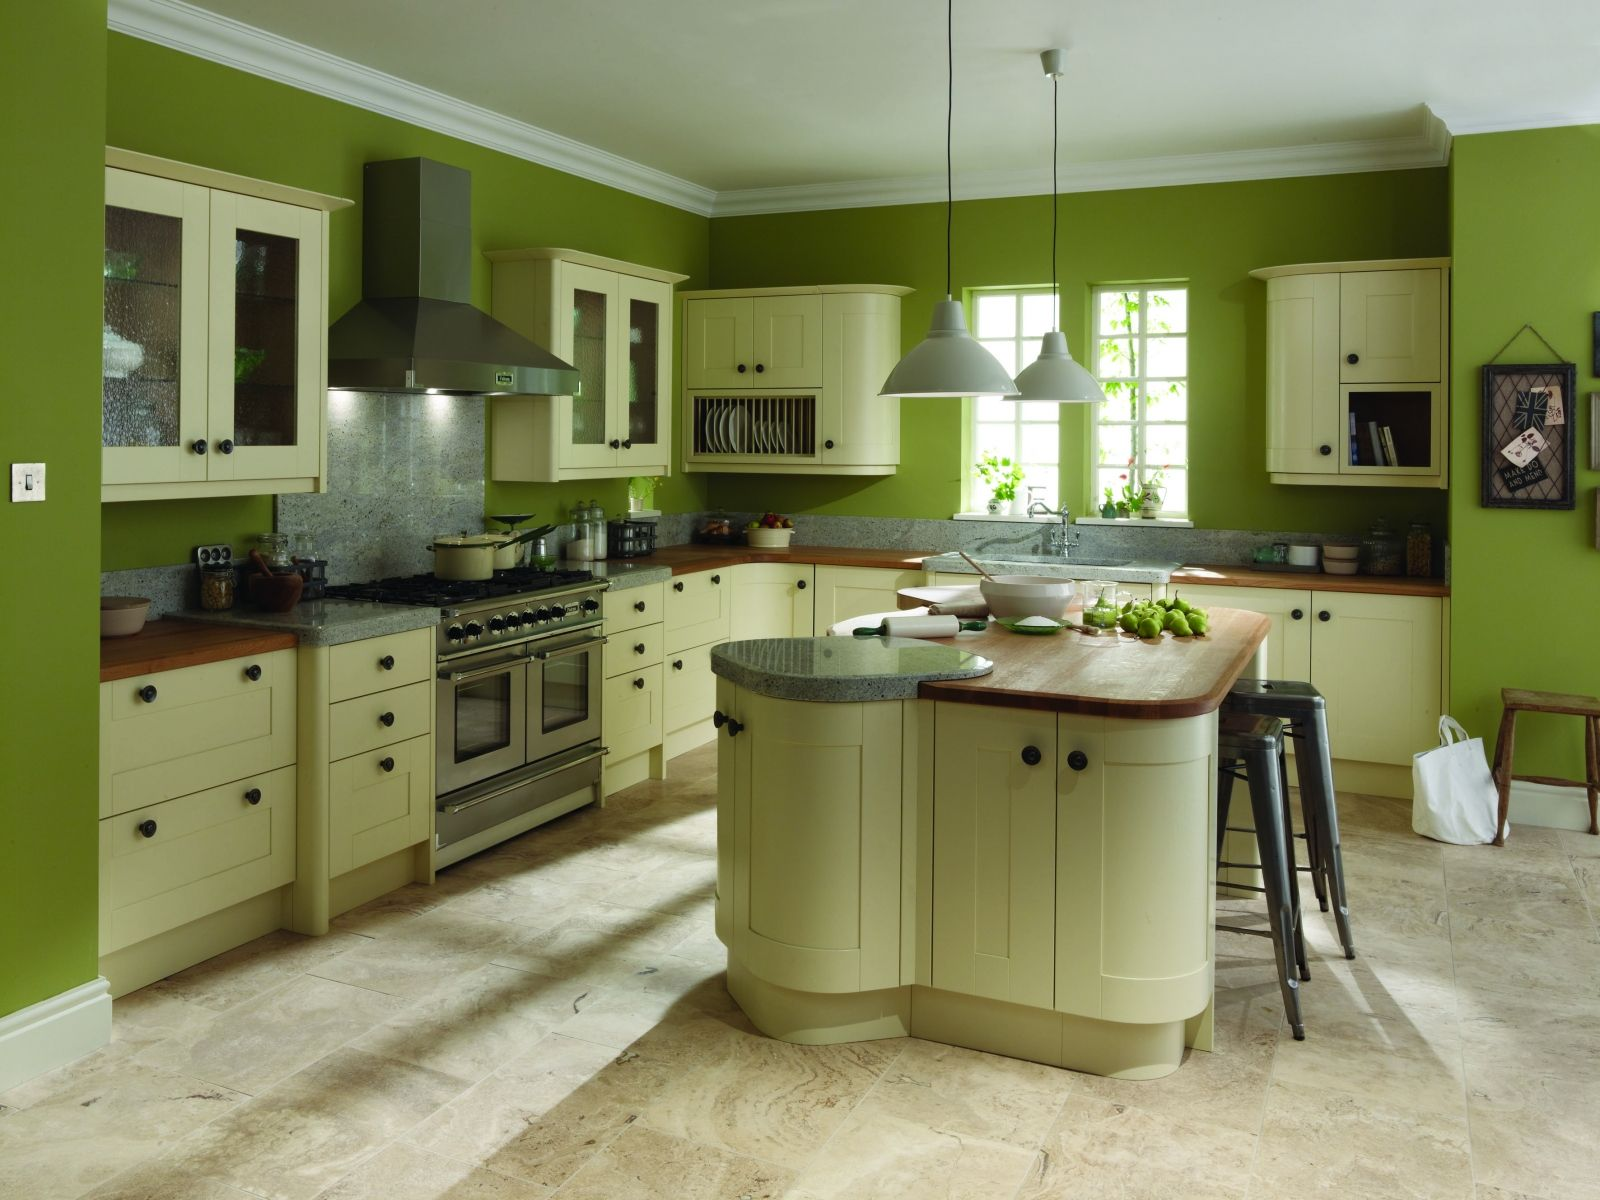 Green Kitchen Walls For Fresh And Natural Looking Kitchen ...